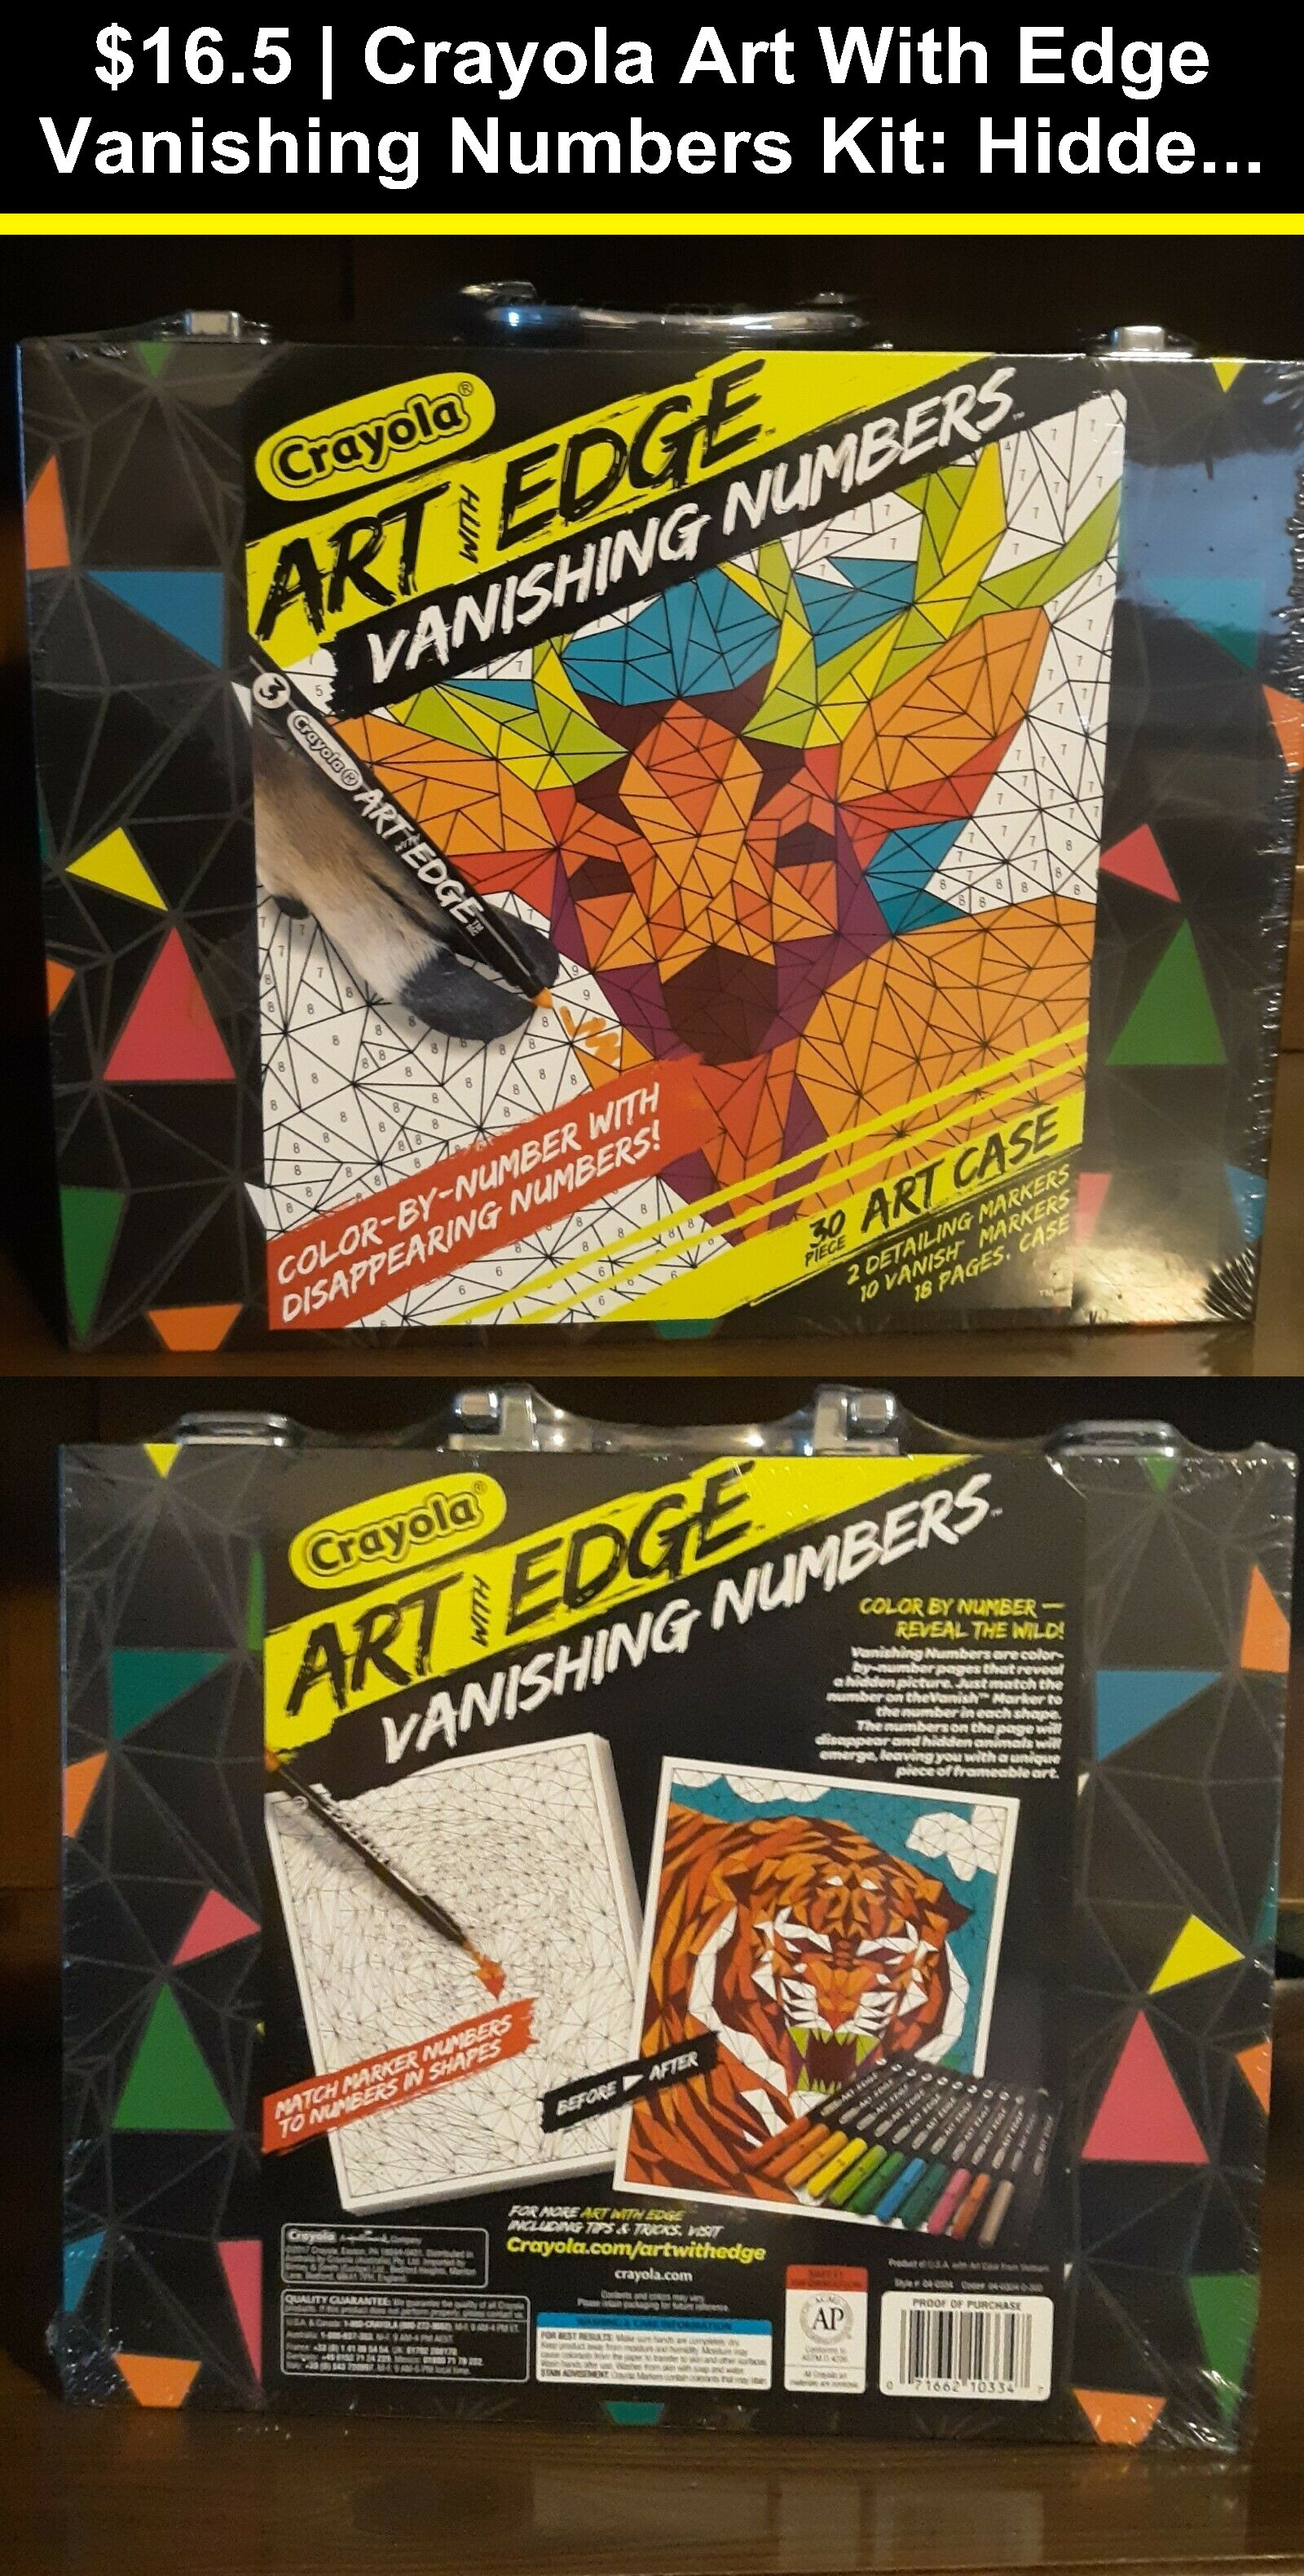 Other Kids Drawing And Painting 160718 Crayola Art With Edge Vanishing Numbers Kit Hidden Animal Pages Markers And Case Buy I Crayola Art Art Kit Crayola